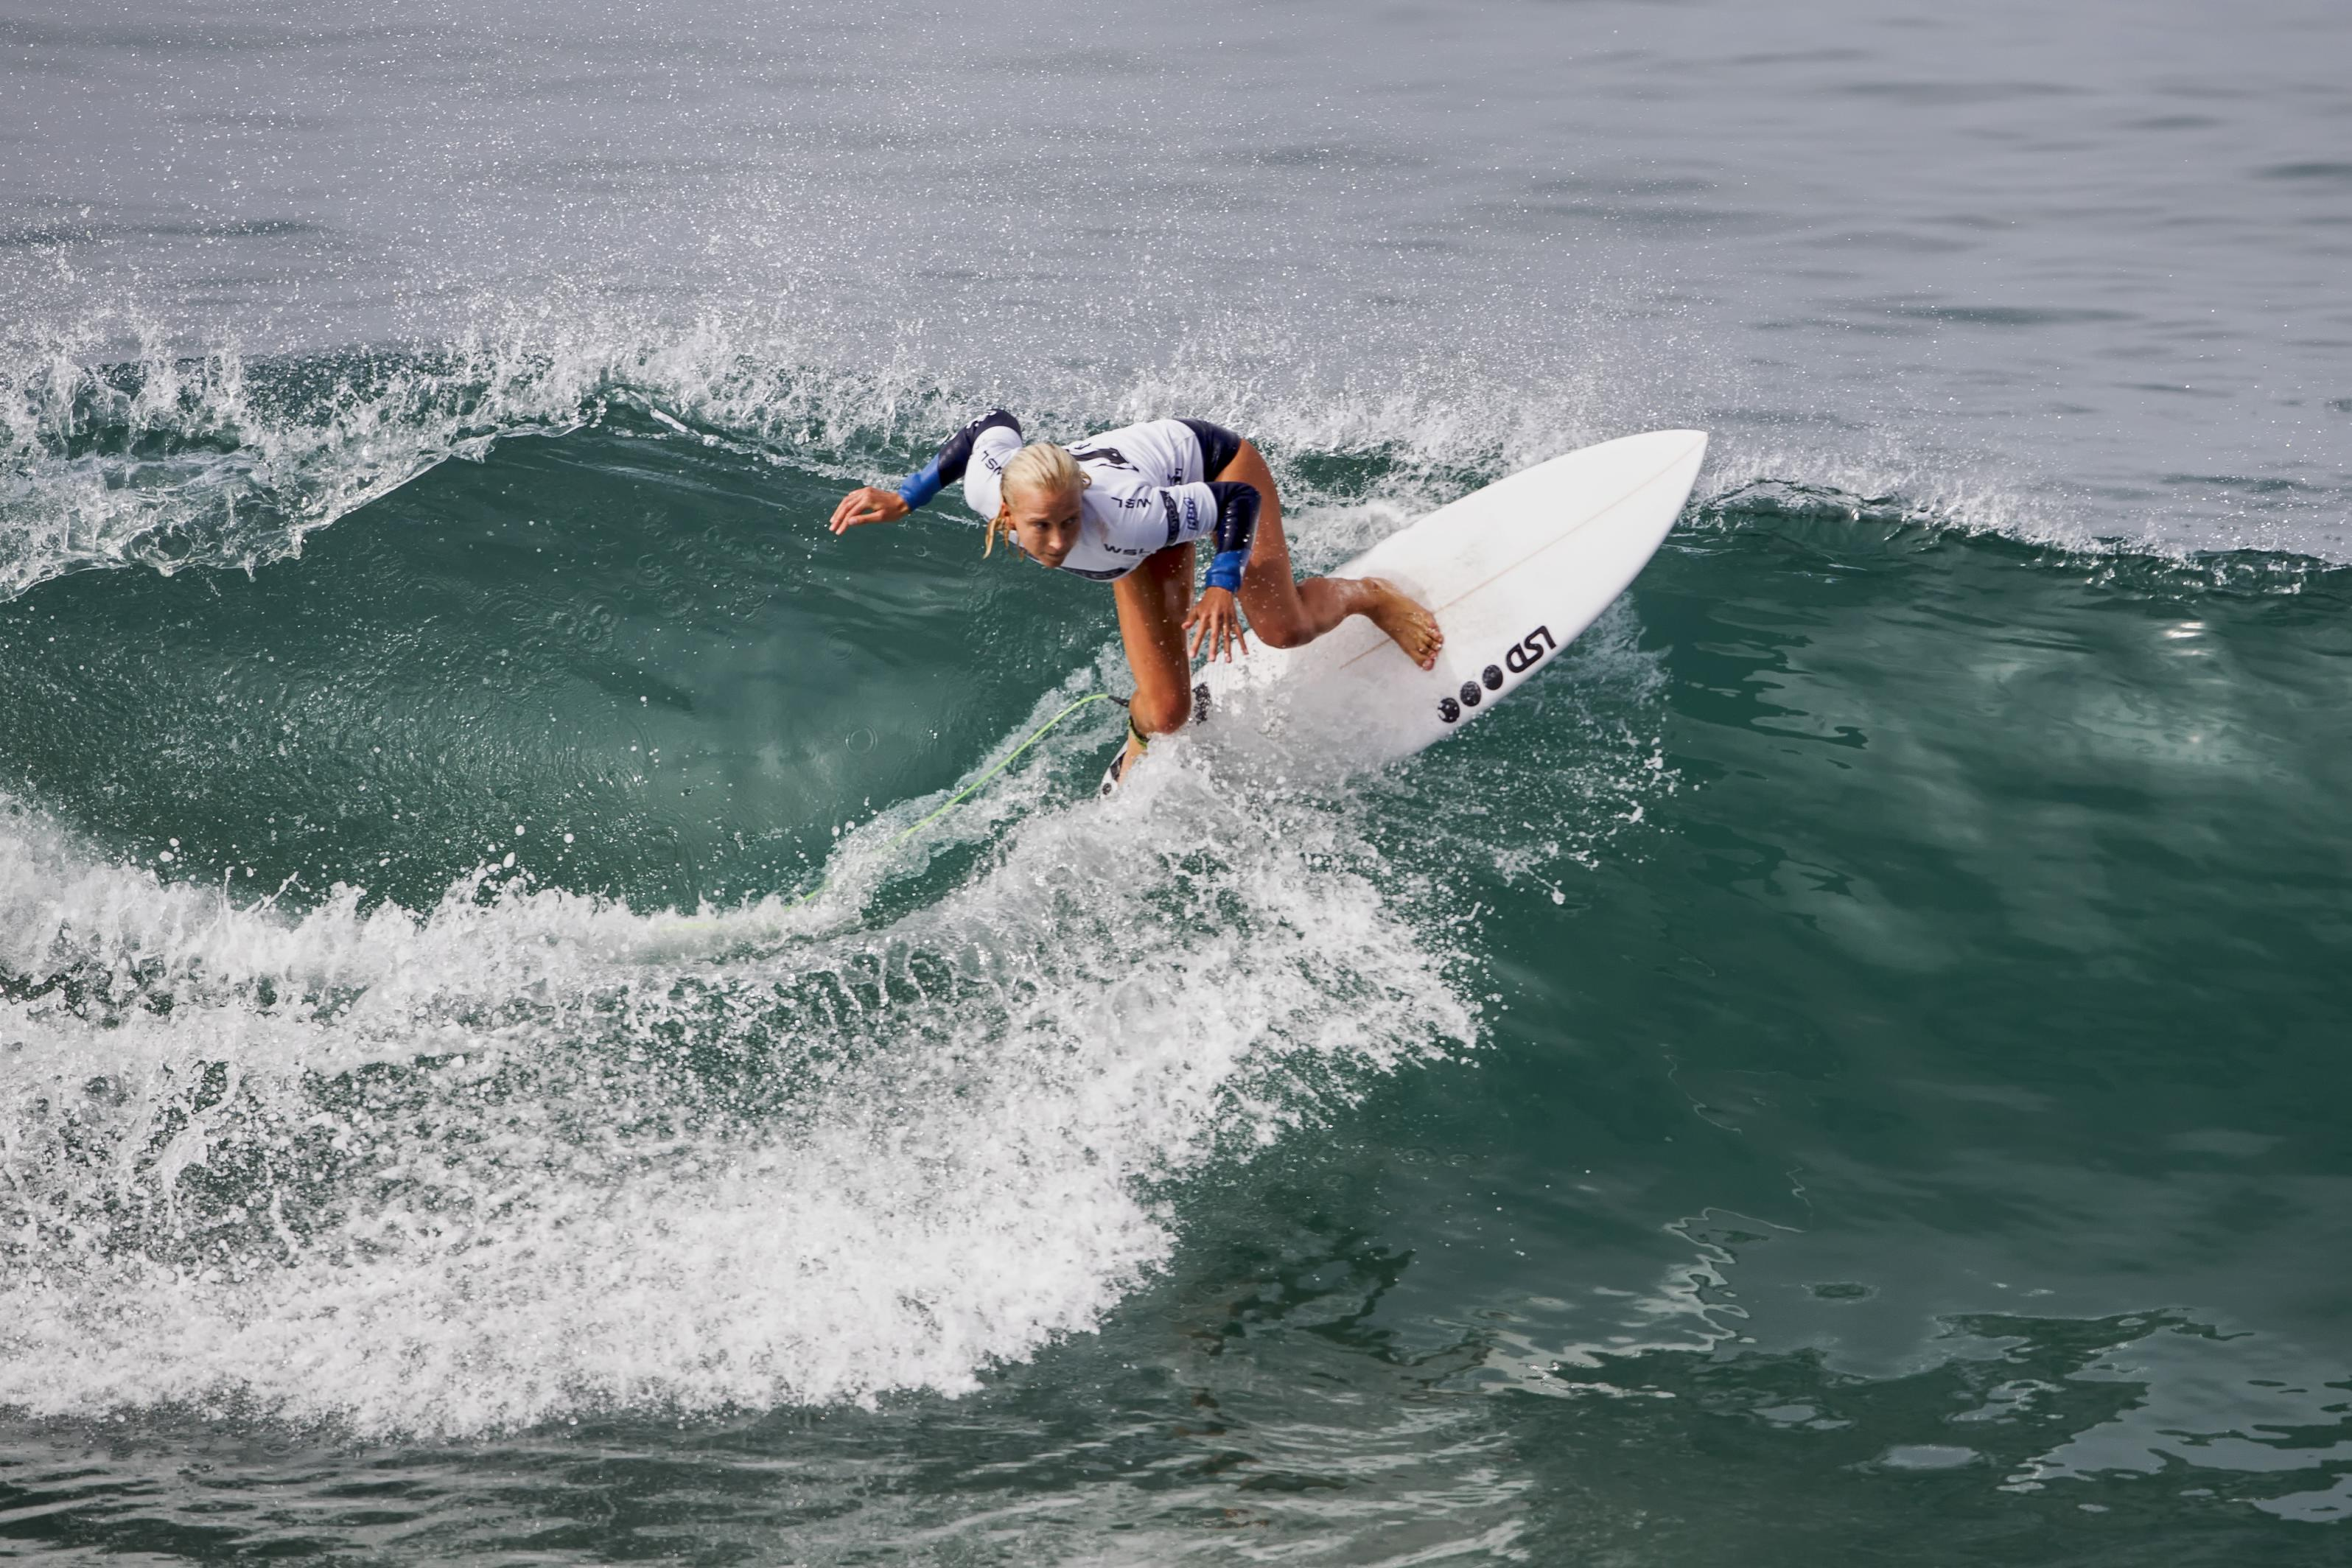 Georgia Fish competes during Round 4, Heat 1 of the Paul Mitchell Supergirl Pro held in fun 2 - 3 foot surf on Saturday in Oceanside. Photo by Bill Reilly